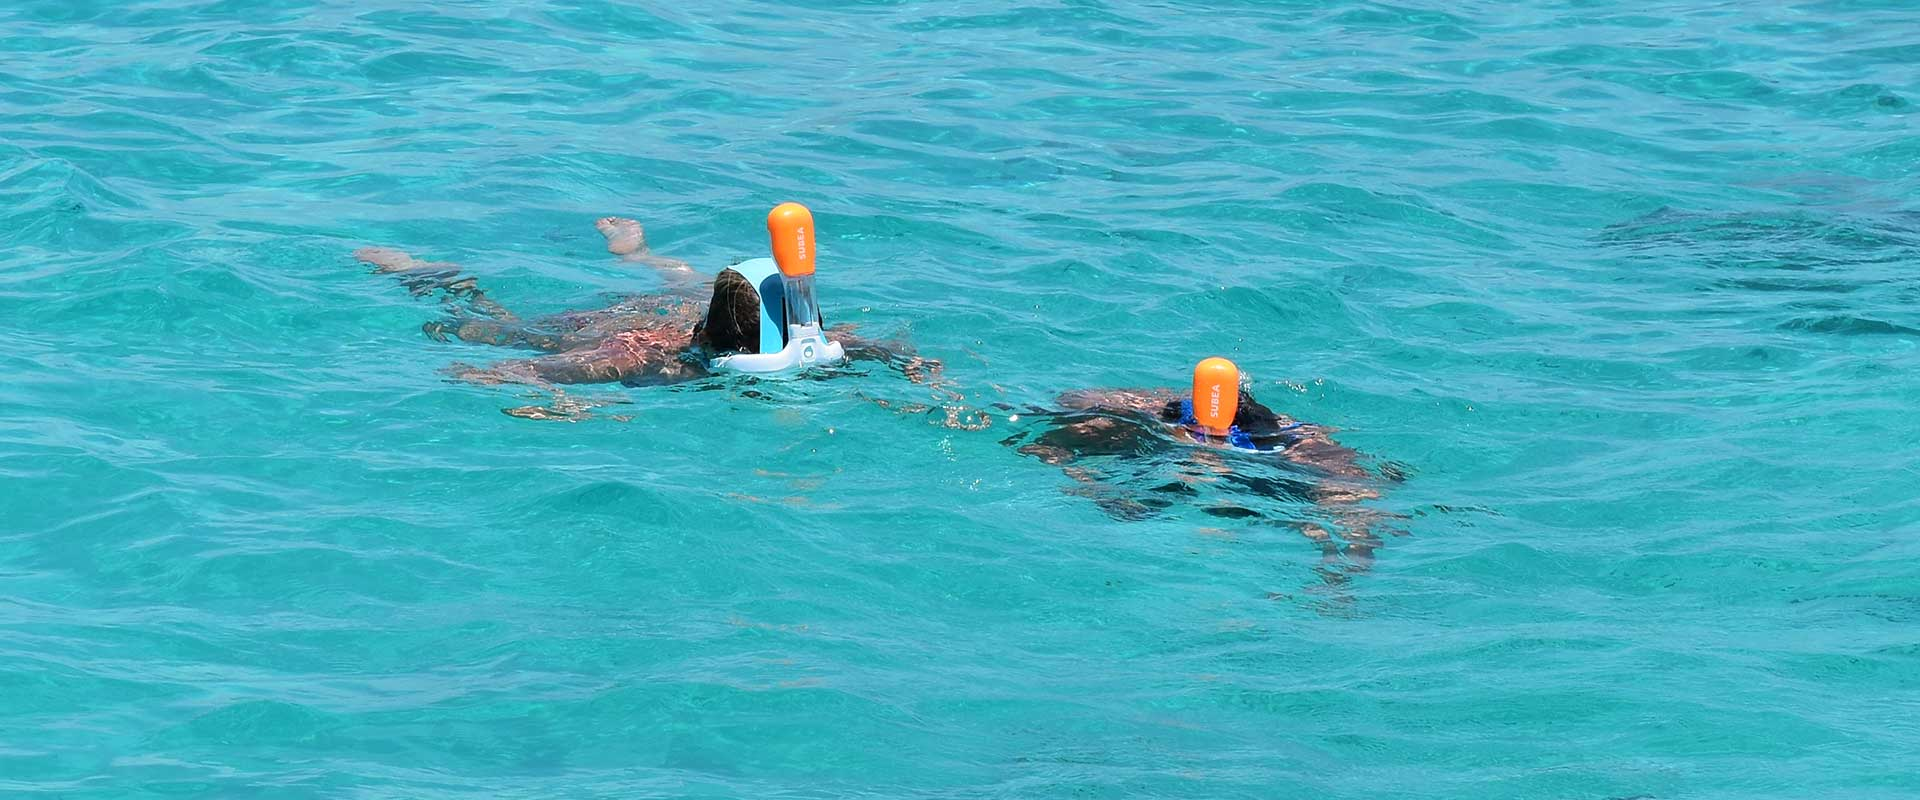 snorkeling at klein curacao